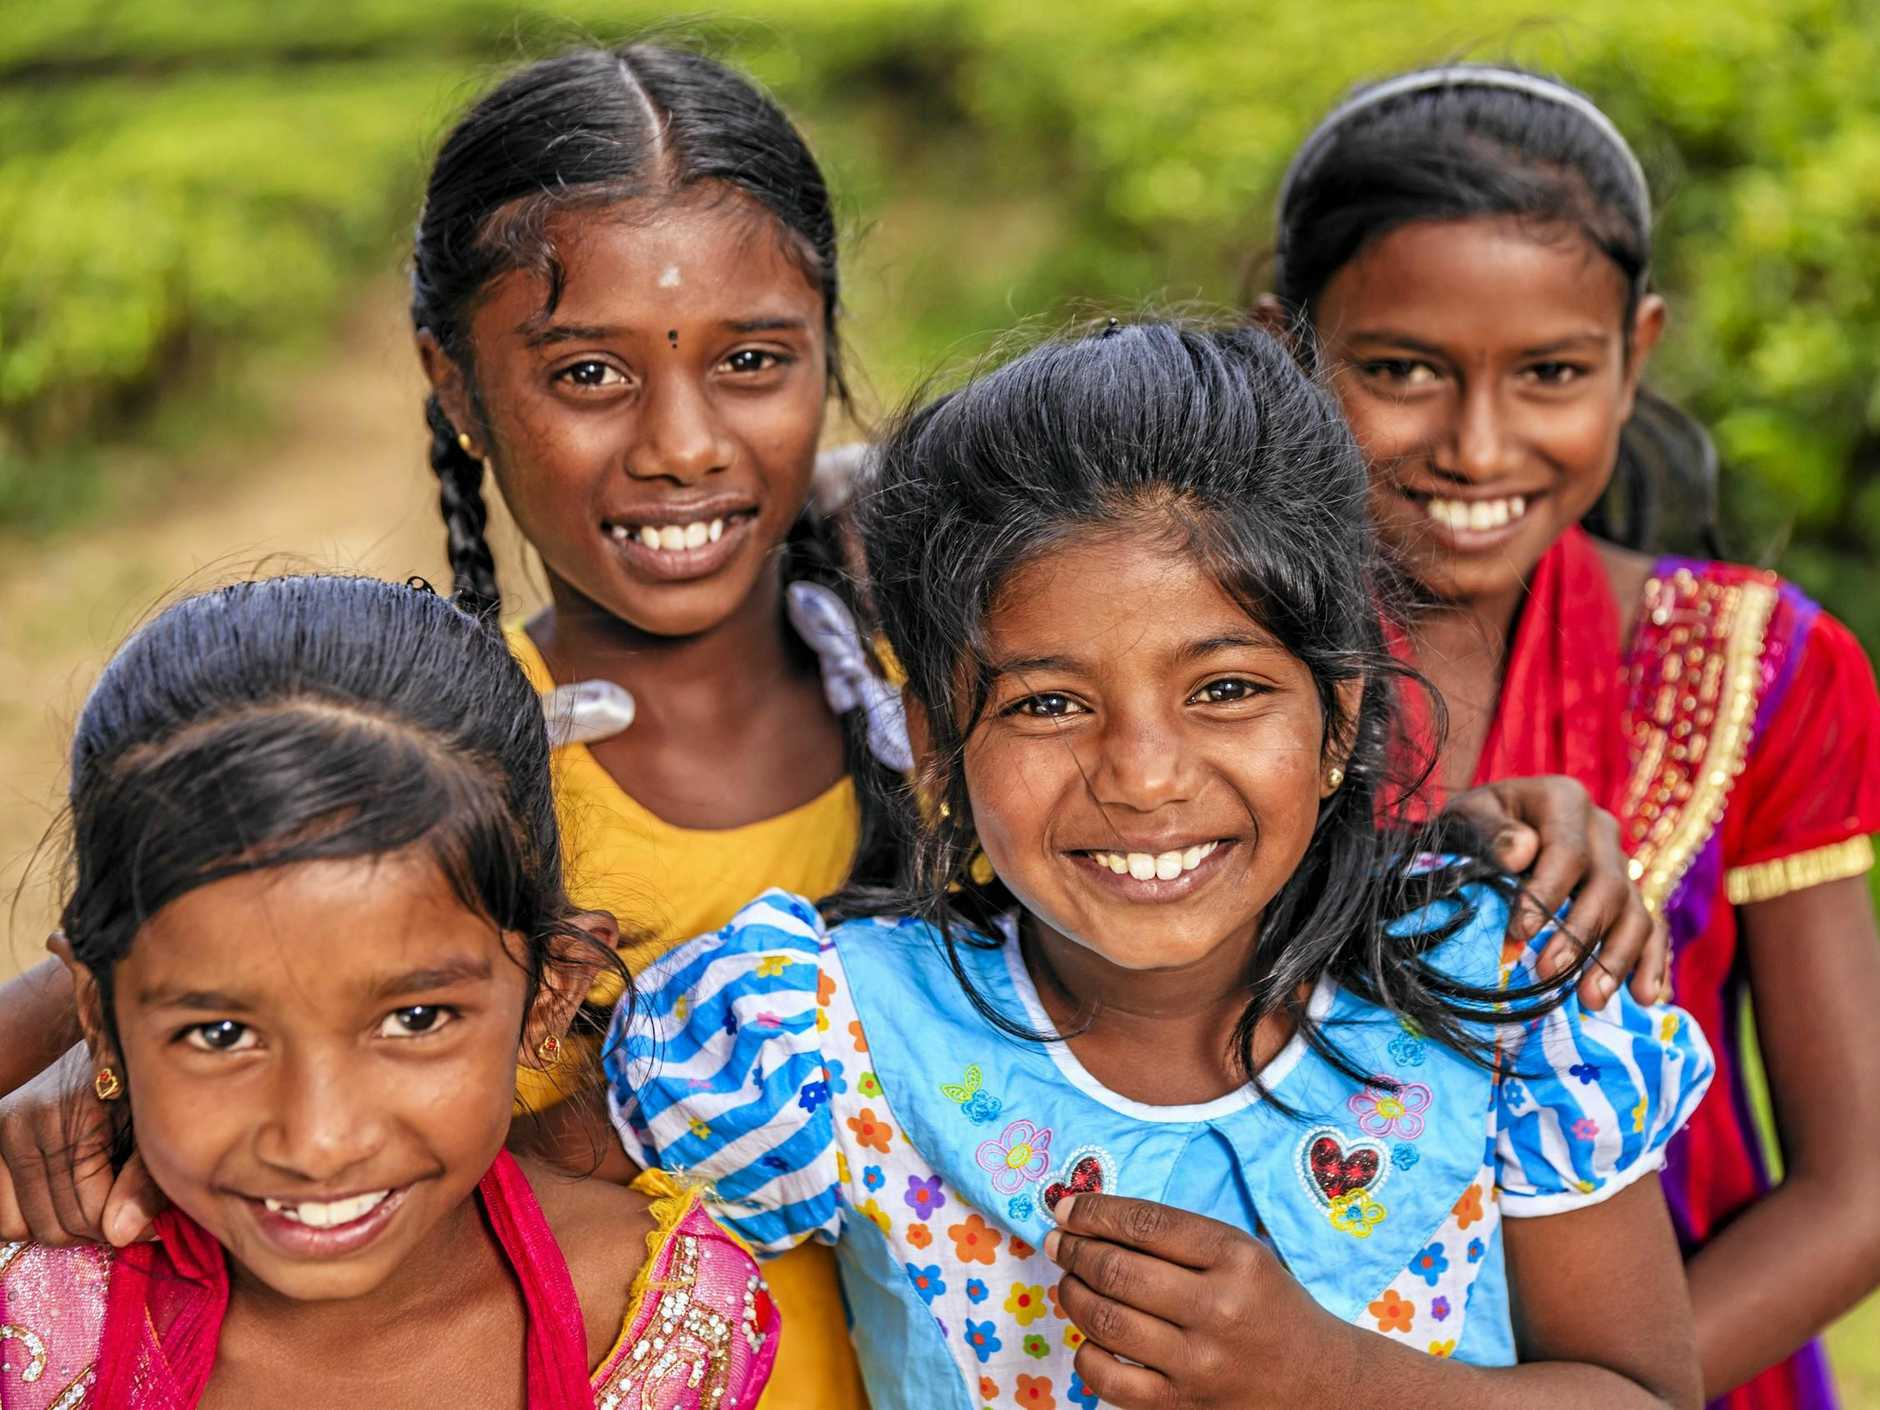 Sri Lankan young girls posing at a tea plantation. Their parents work on this tea plantation near Nuwara Eliya, Sri Lanka.